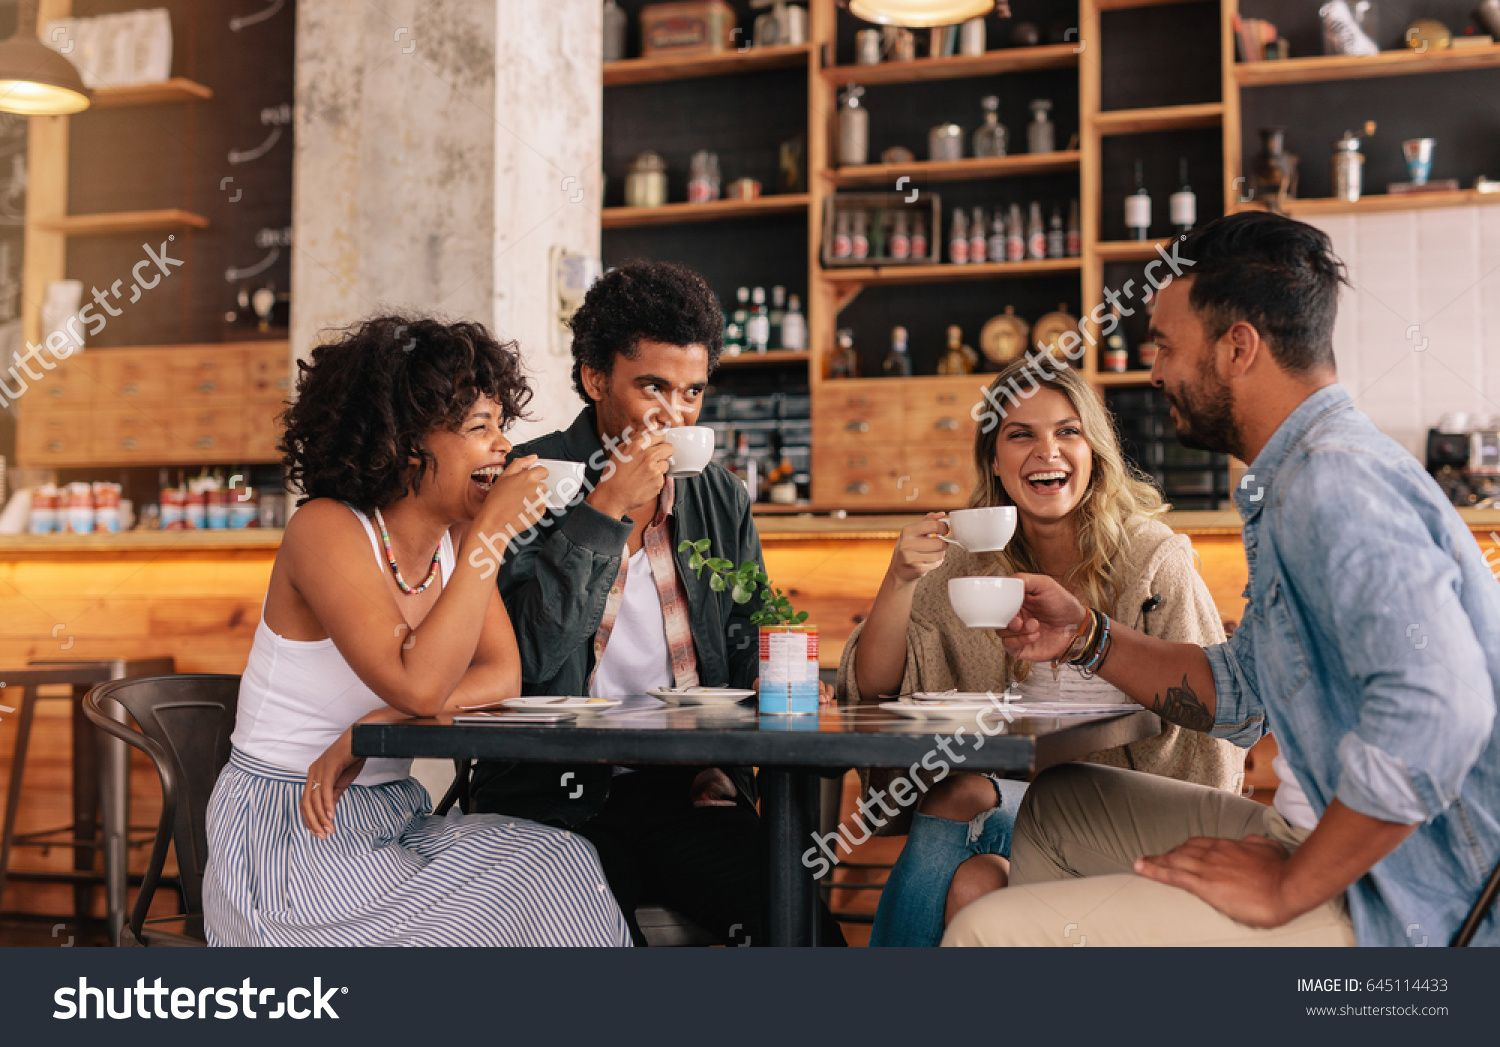 Diverse group of friends enjoying some coffee together in a restaurant and  talking. Young people sitting around cafe table and drinking coffee.